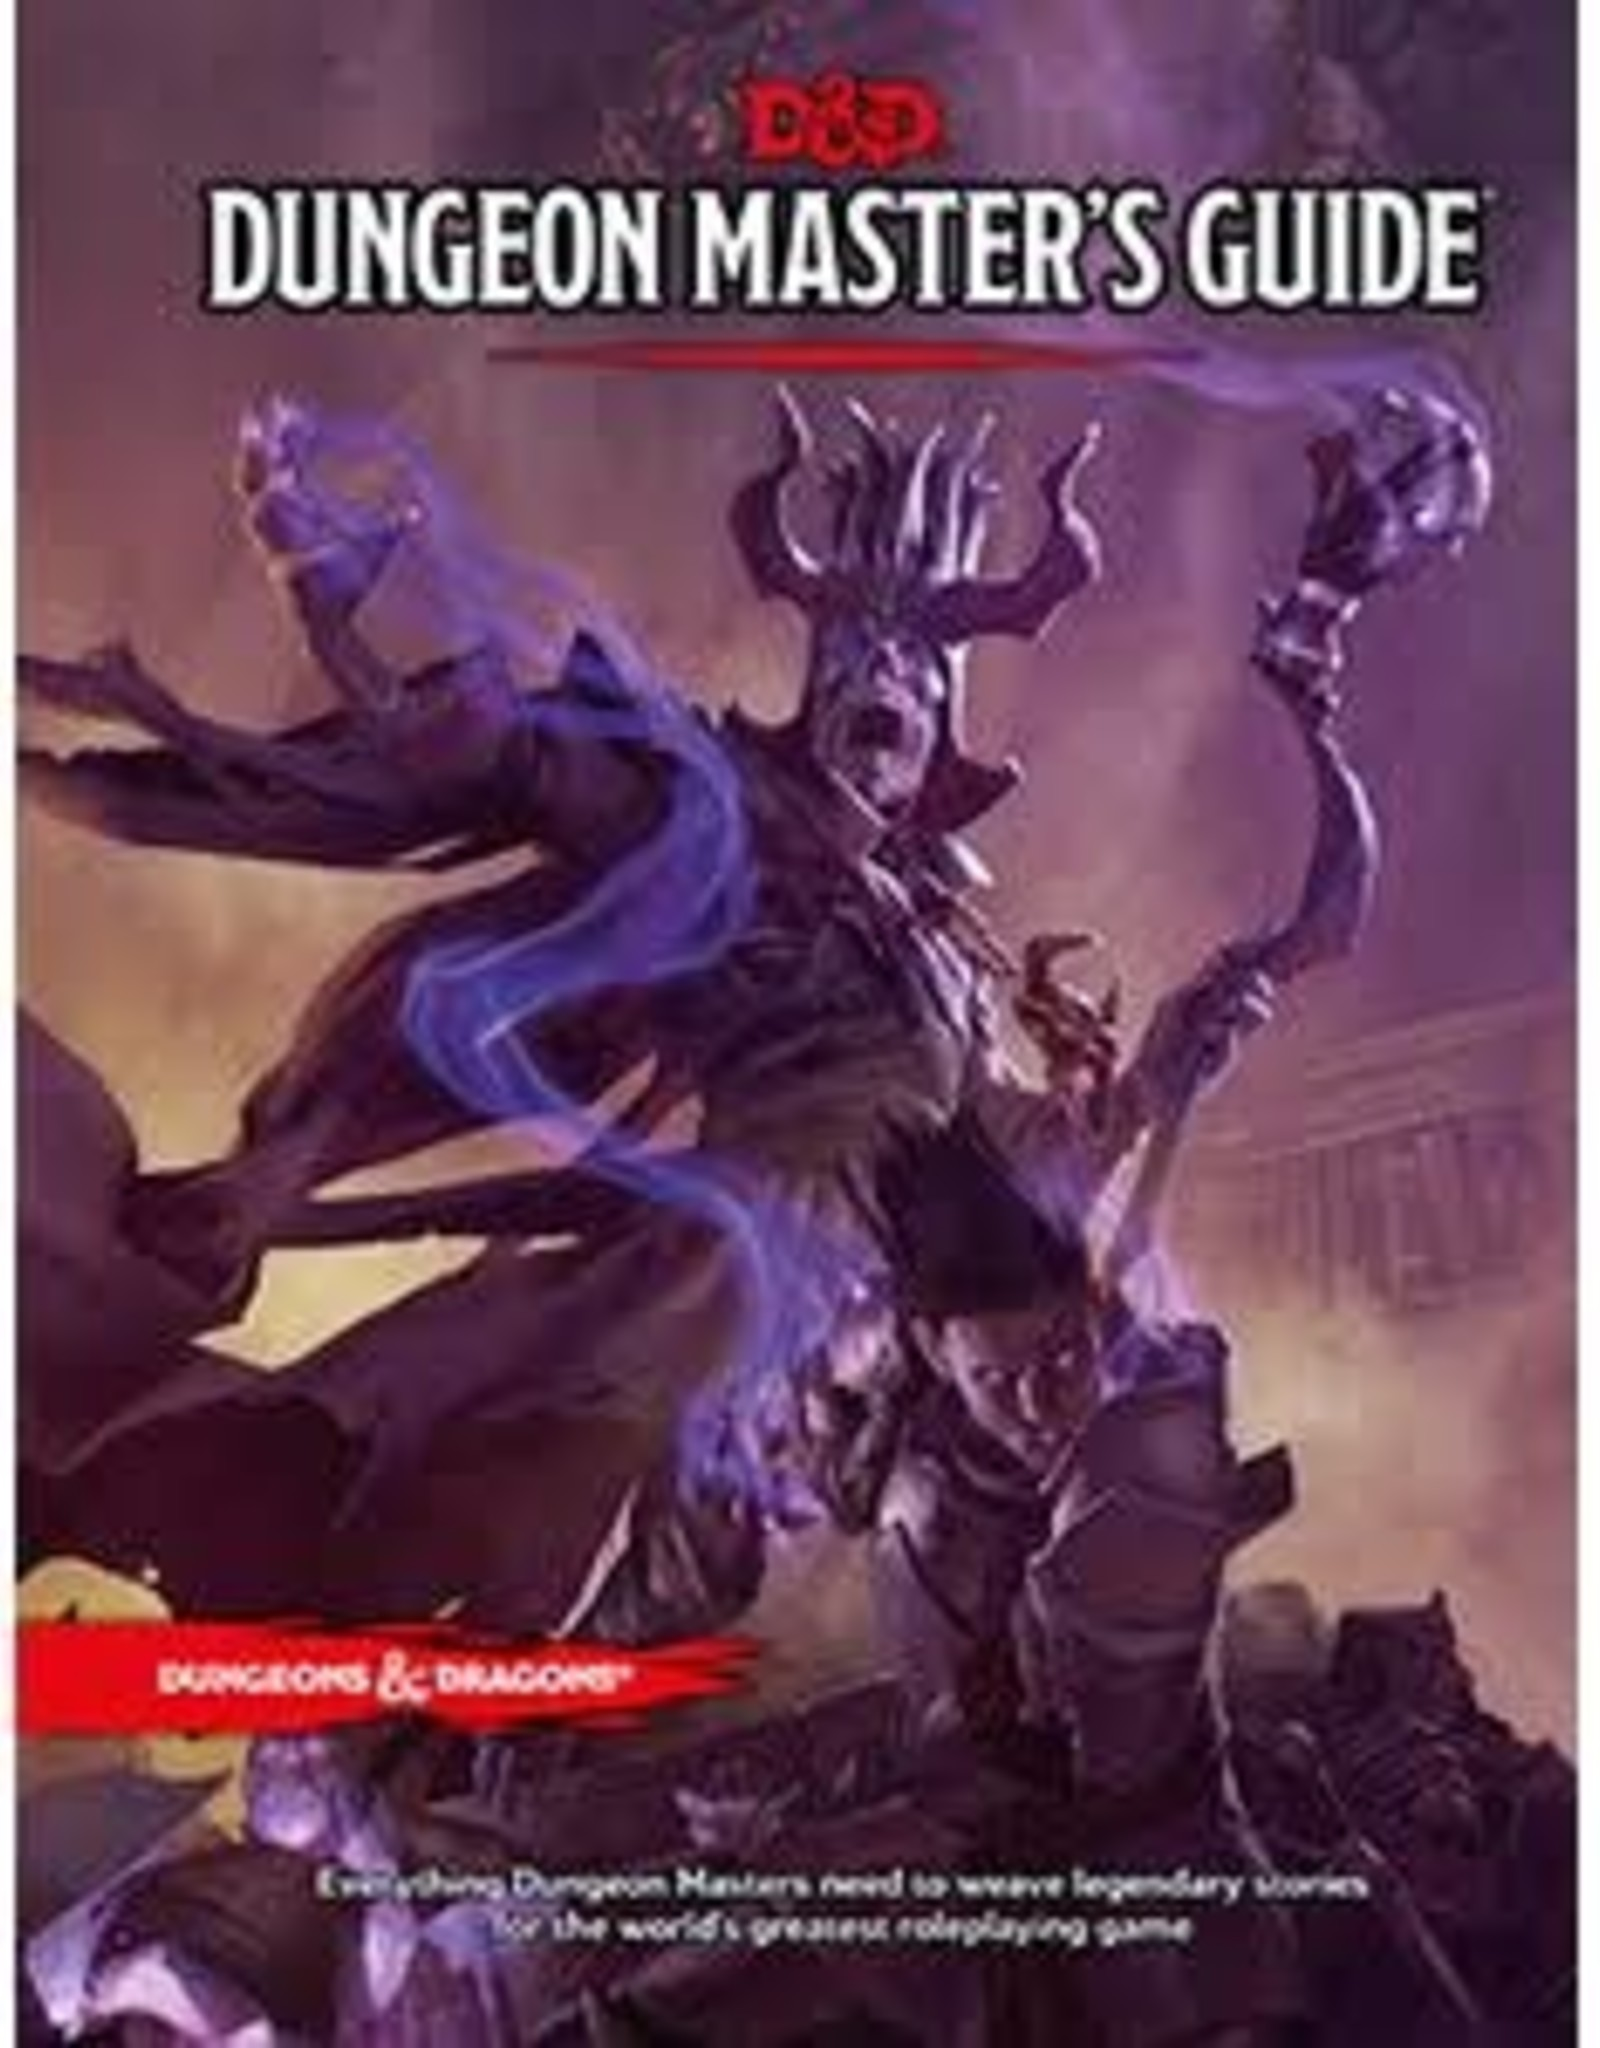 Wizards of the Coast DND RPG DUNGEON MASTER'S GUIDE